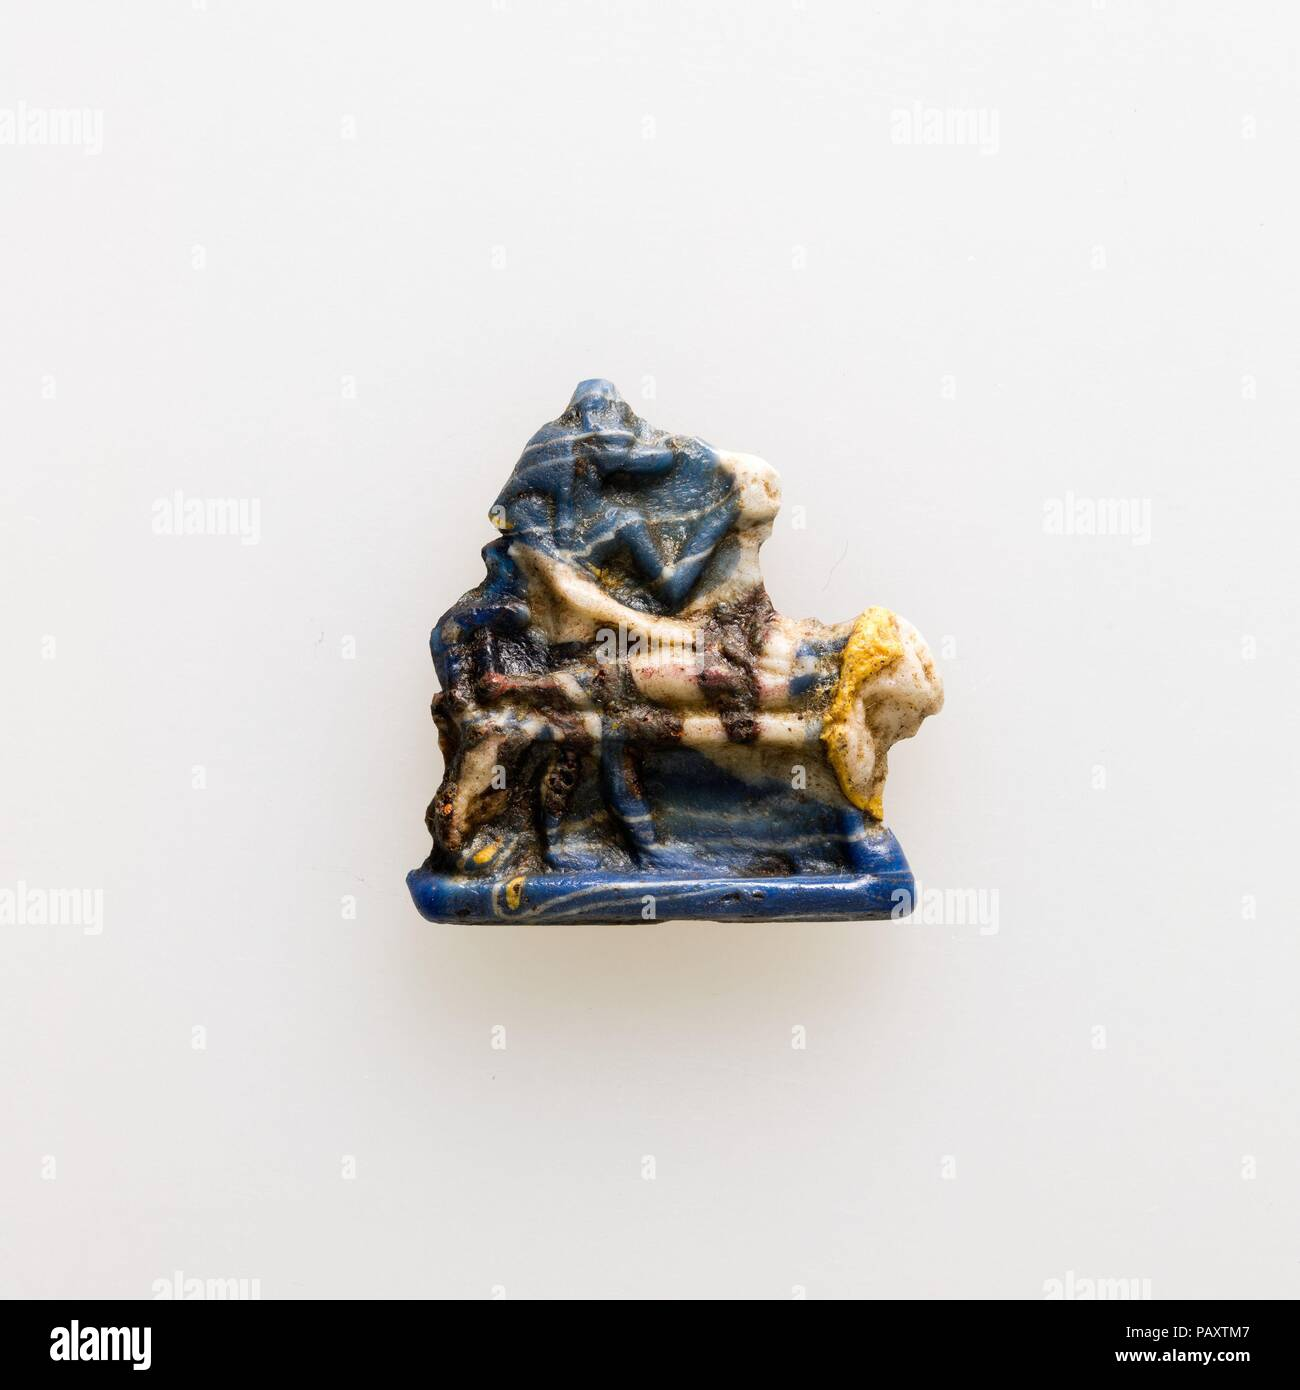 Amulet showing  Anubis standing over mummy on bier. Dimensions: H. 2.7 × W. 2.6 cm (1 1/16 × 1 in.). Date: 400-30 BC.  Starting in the later Late Period and continuing through the Ptolemaic Period, a type of glass amulet cast by pressing the glass into a shallow open mold appears. The back was left rough, and the amulets may look ragged because glass overflowed the mold around the edges. The earlier amulets are monochrome, bi- or multicolor amulets supplement the repertoire during the Ptolemaic Period.   Some of the amulets can be specifically tied to spells of the Book of the Dead like this o - Stock Image